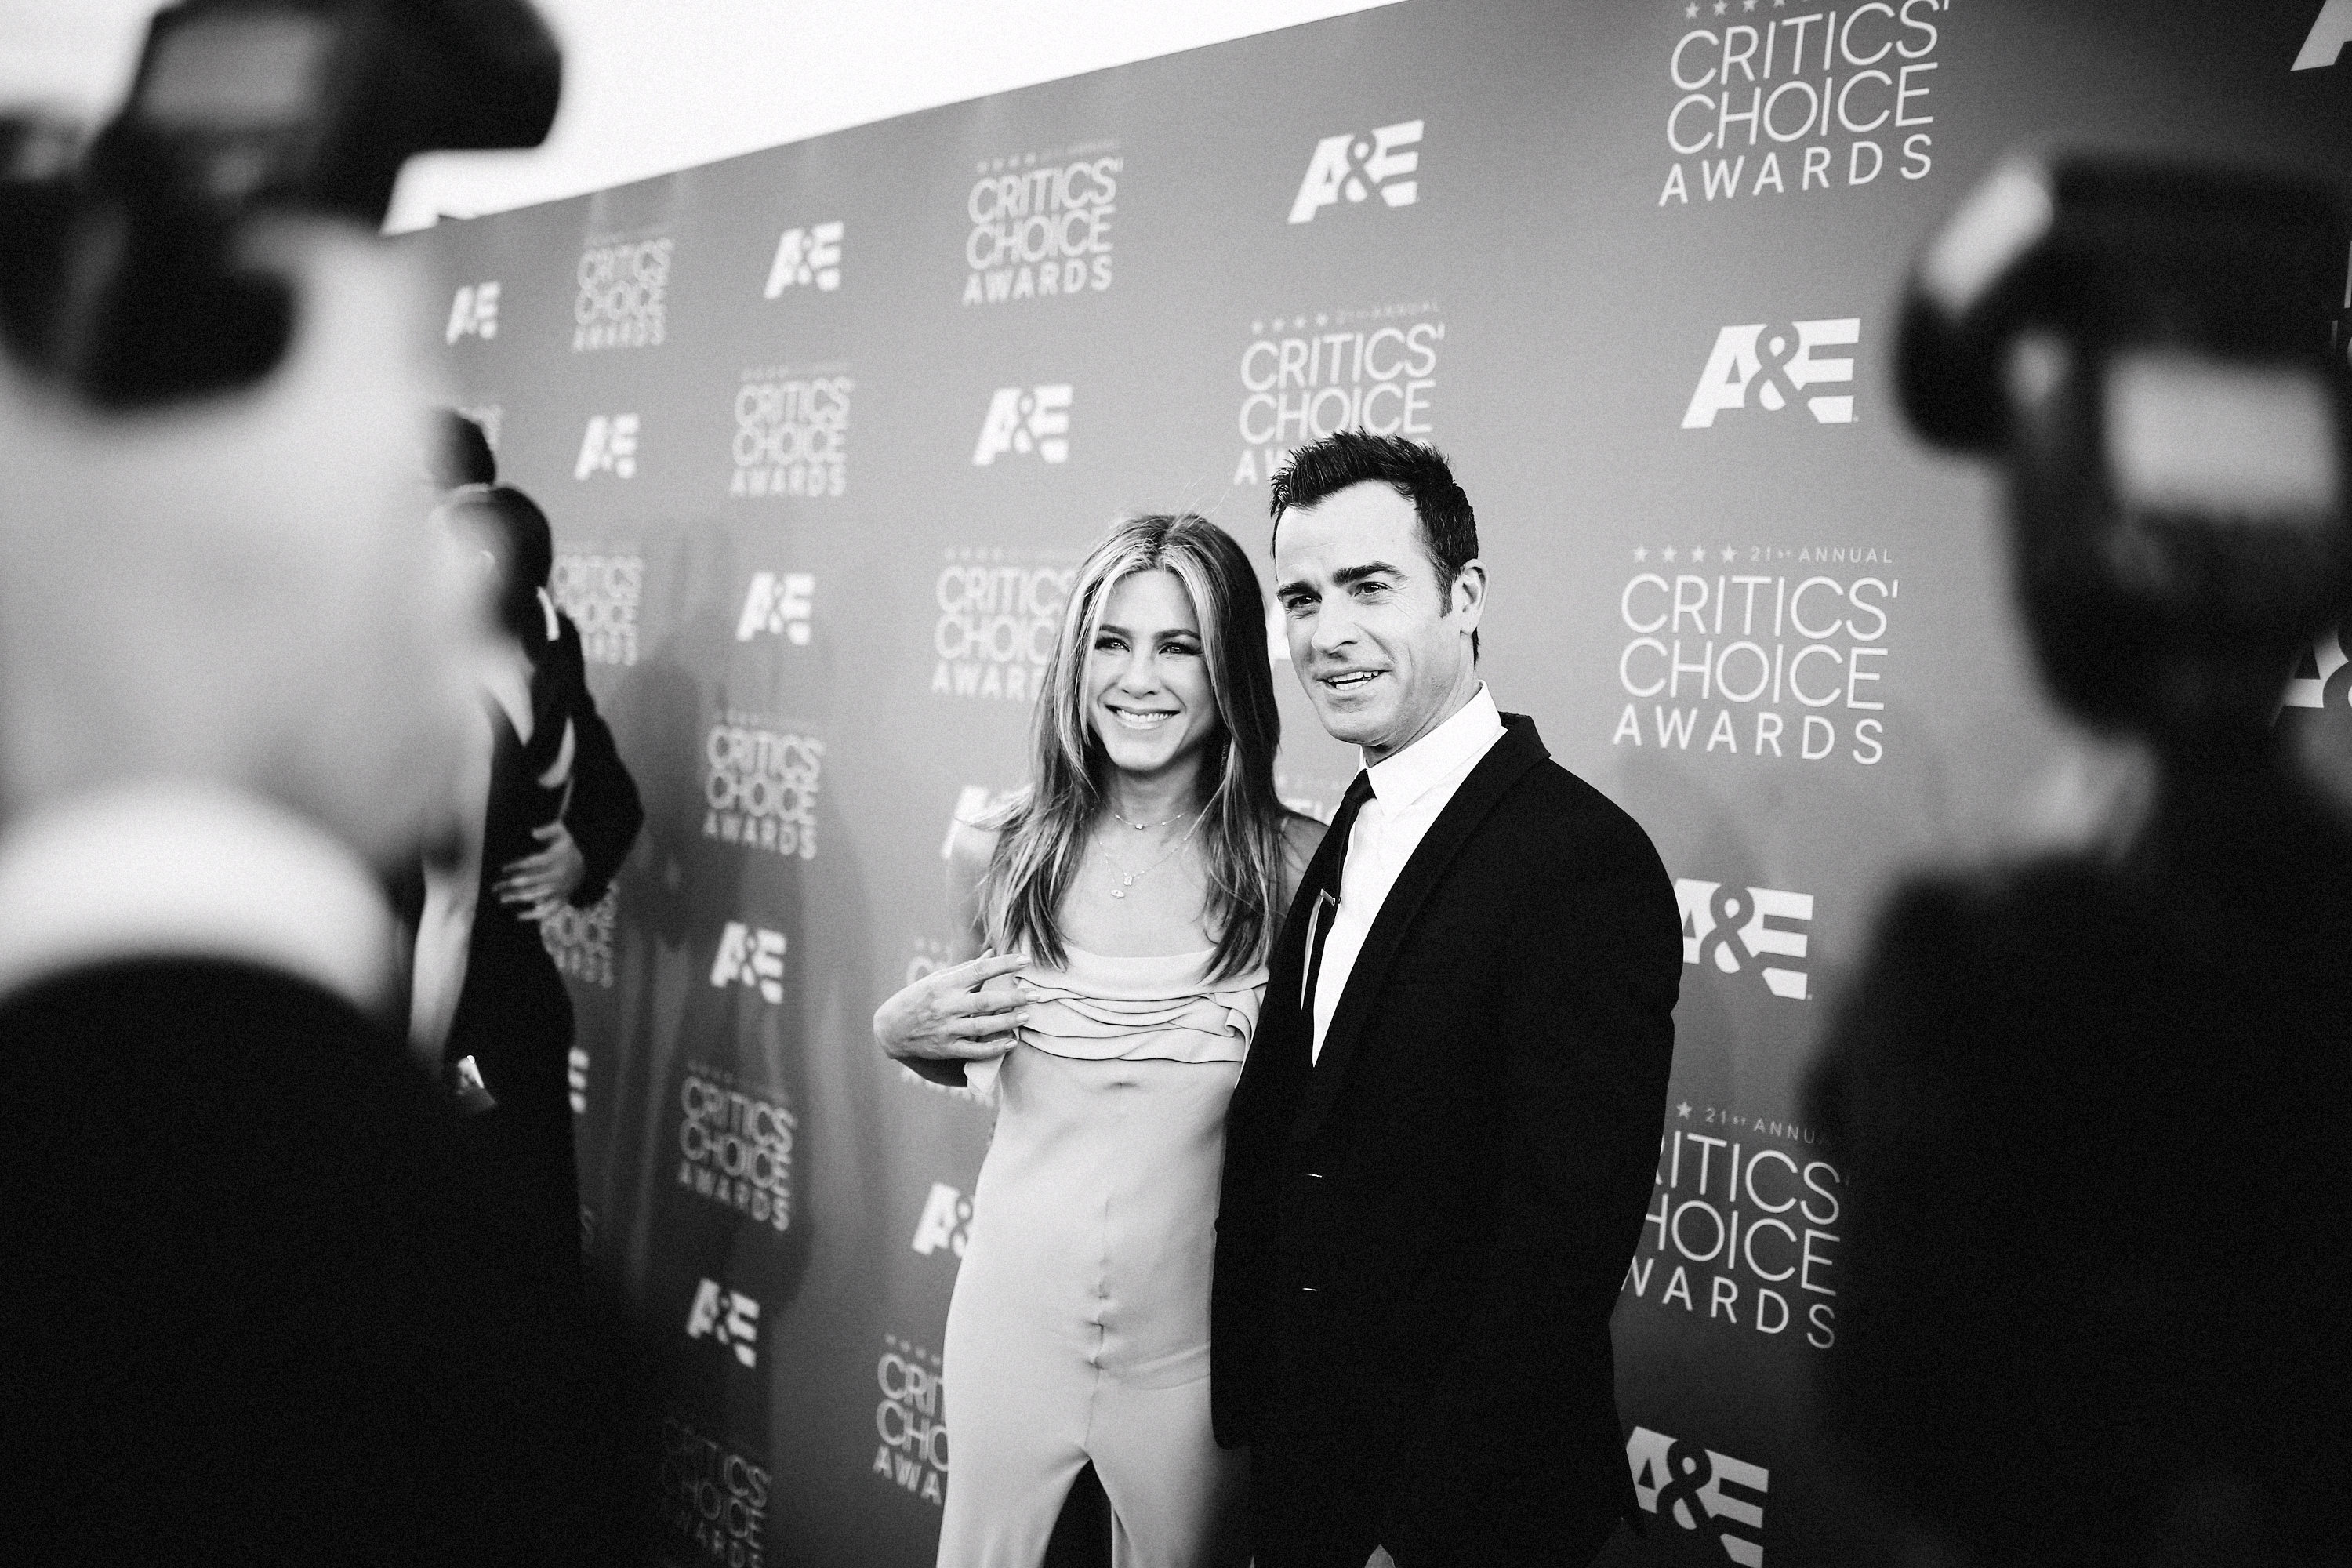 Jennifer Aniston and husband Justin Theroux